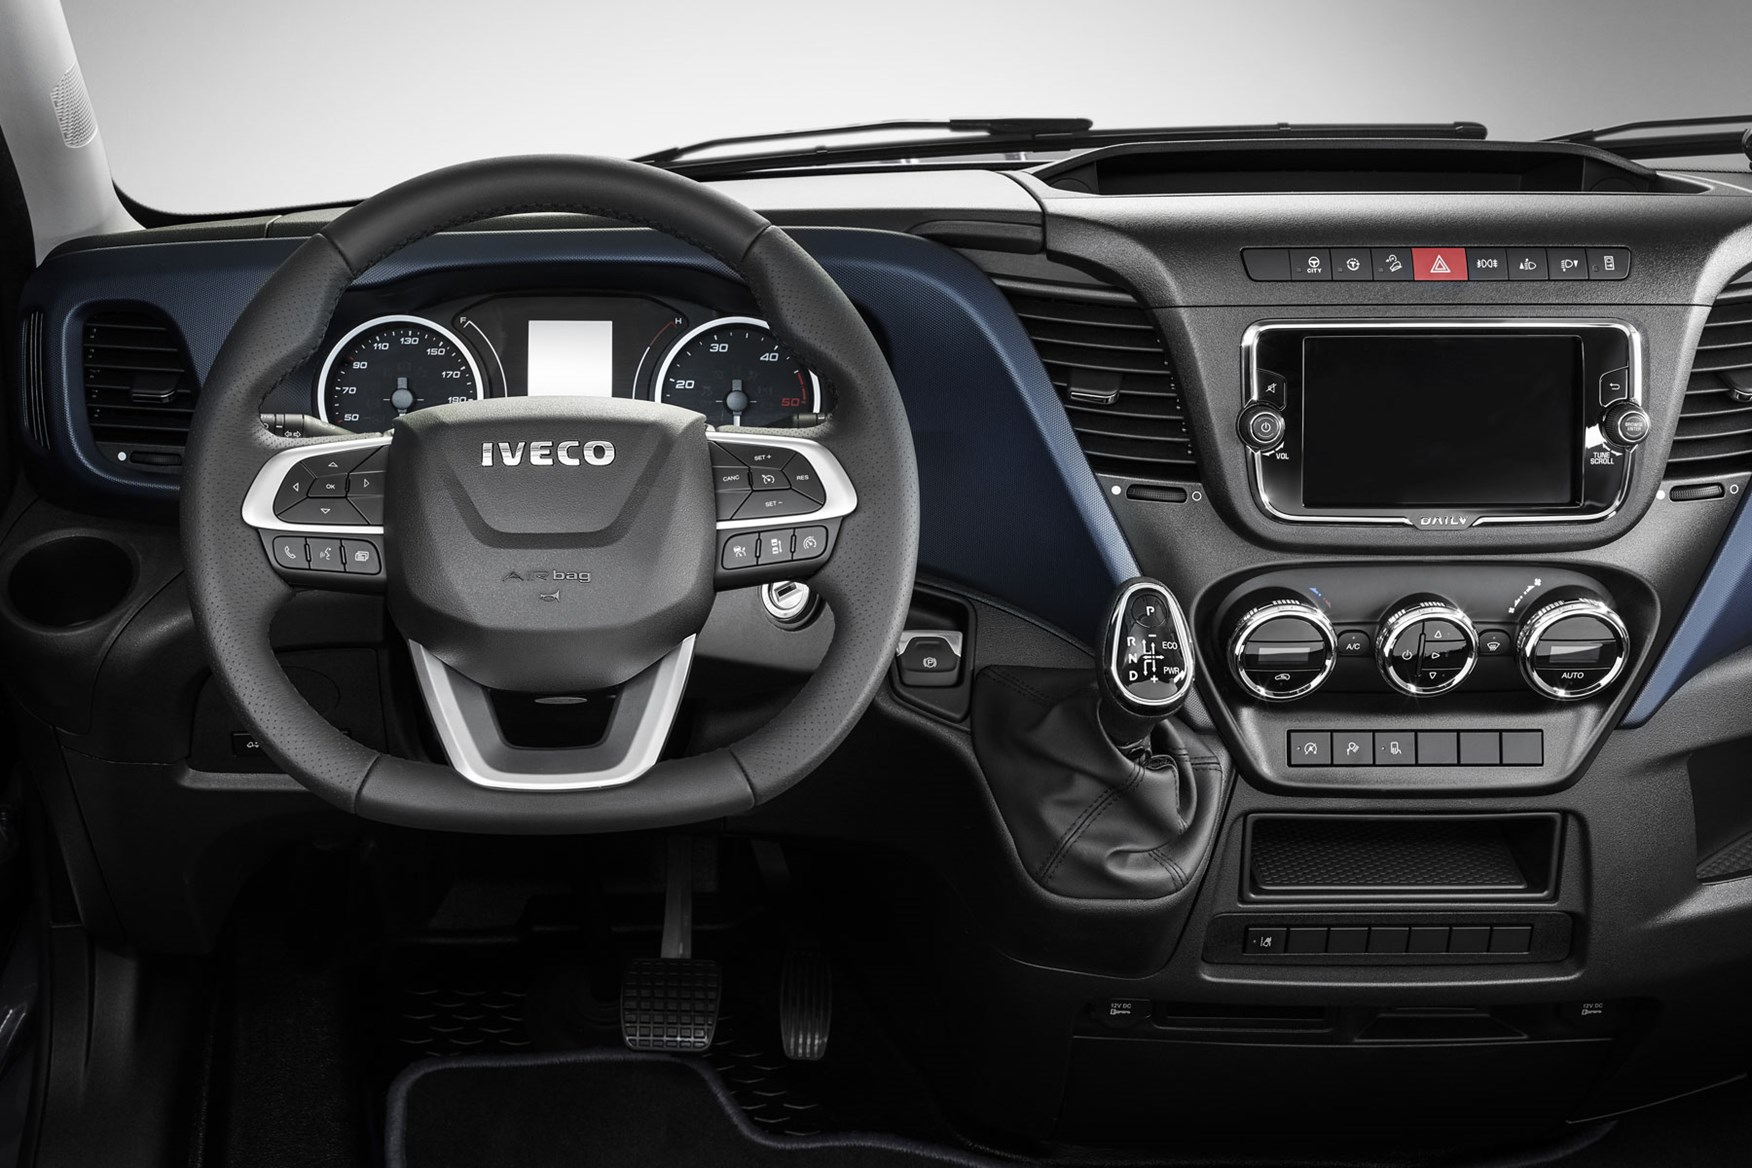 Iveco Daily 2019 cab-interior - steering wheel, instrument cluster, instruments, dials